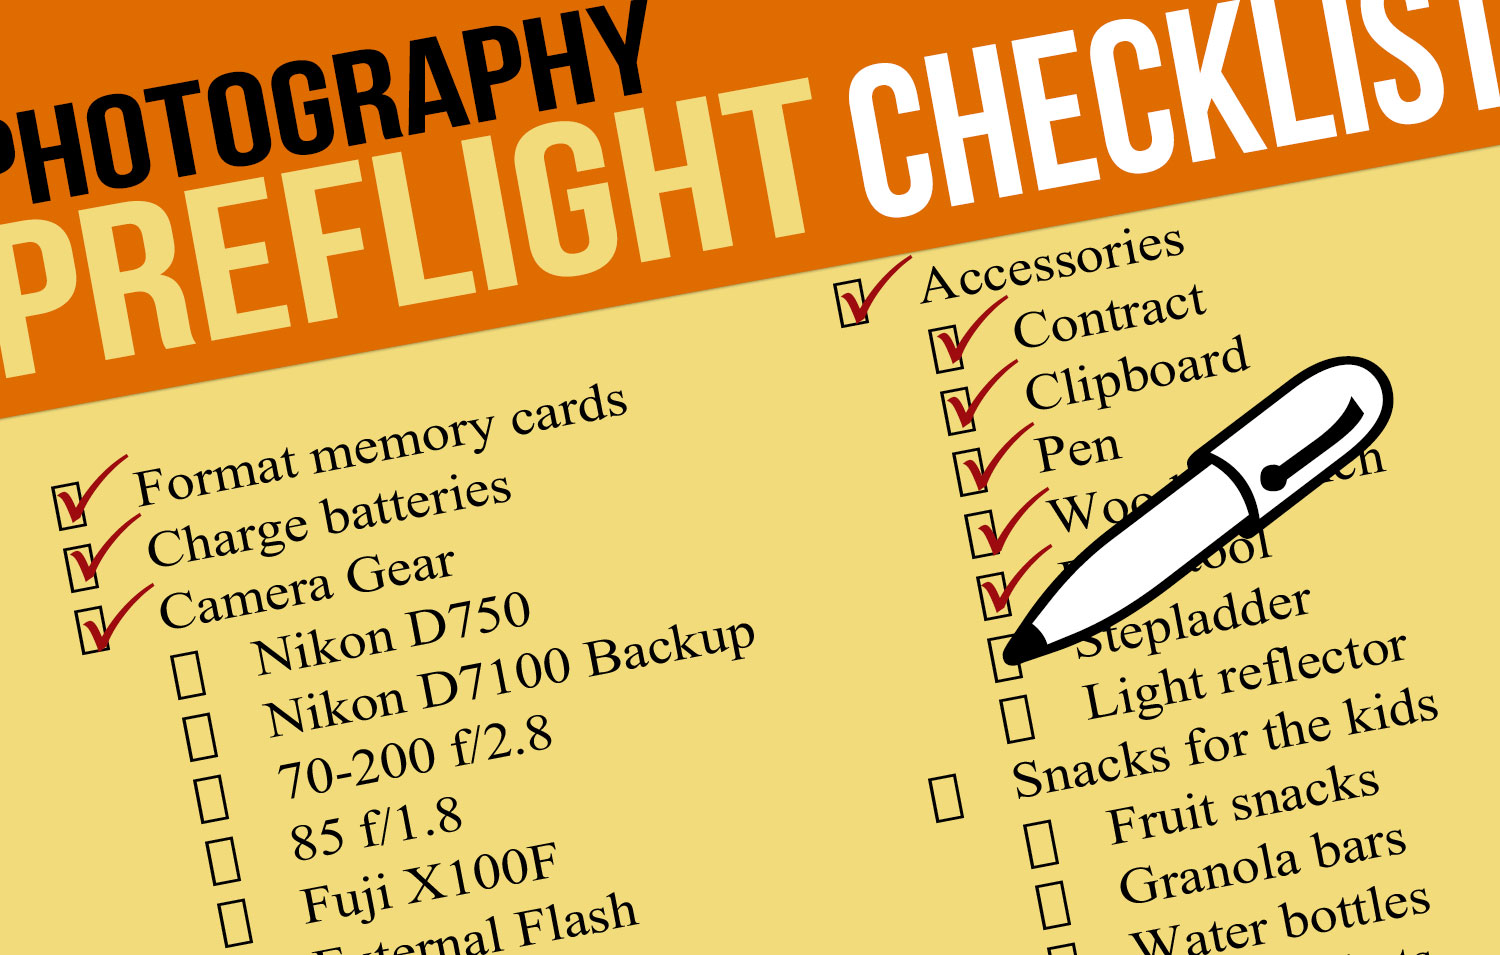 https://i2.wp.com/digital-photography-school.com/wp-content/uploads/2018/11/preflight-checklist-feature.jpg?resize=1500%2C955&ssl=1